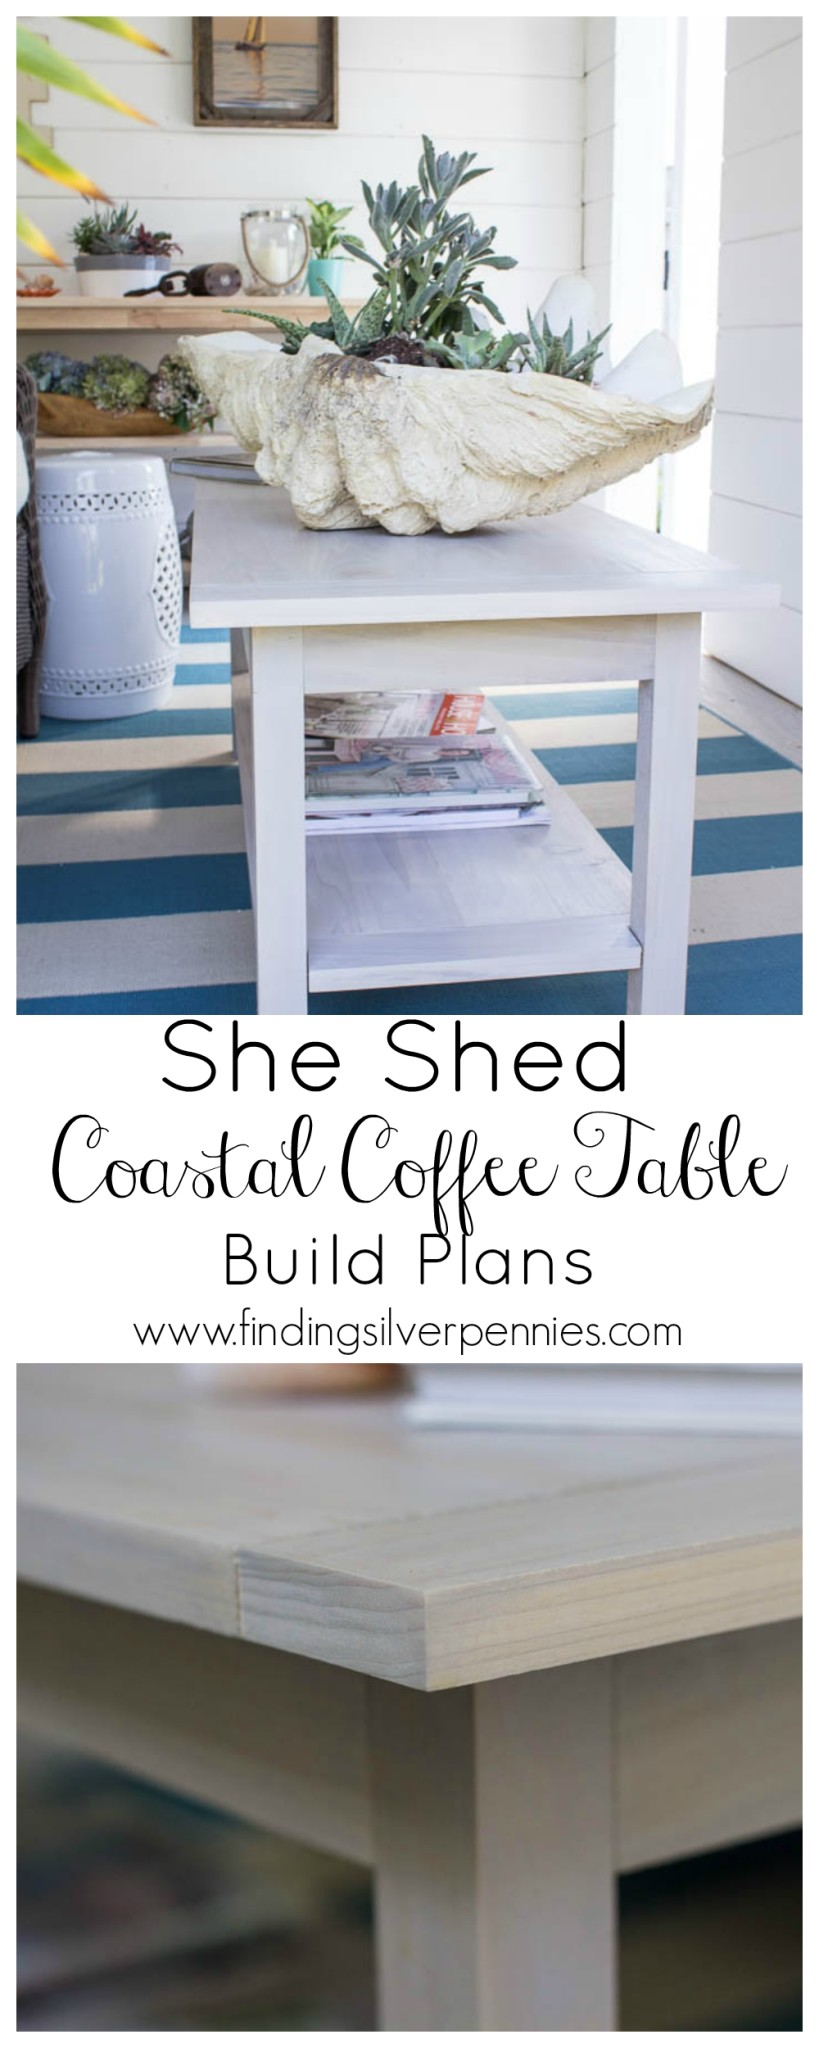 How to Build a Coastal Coffee Table